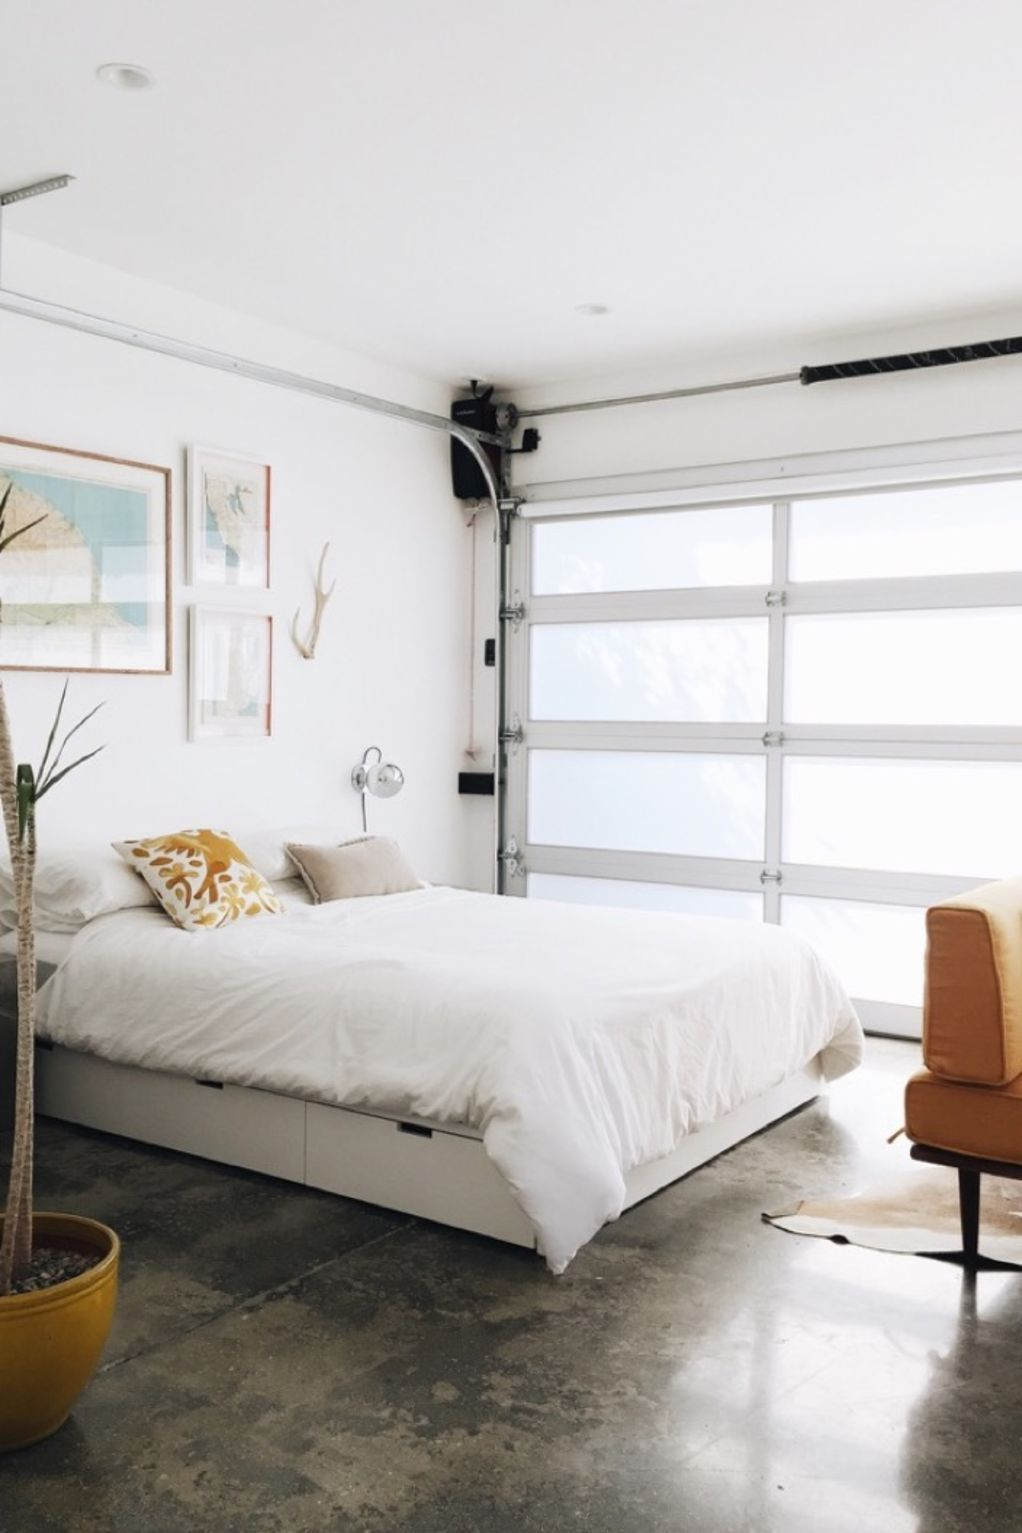 Garage Apartment Los Angeles The Coolest Airbnb In Los Angeles Airows Garage Conversions